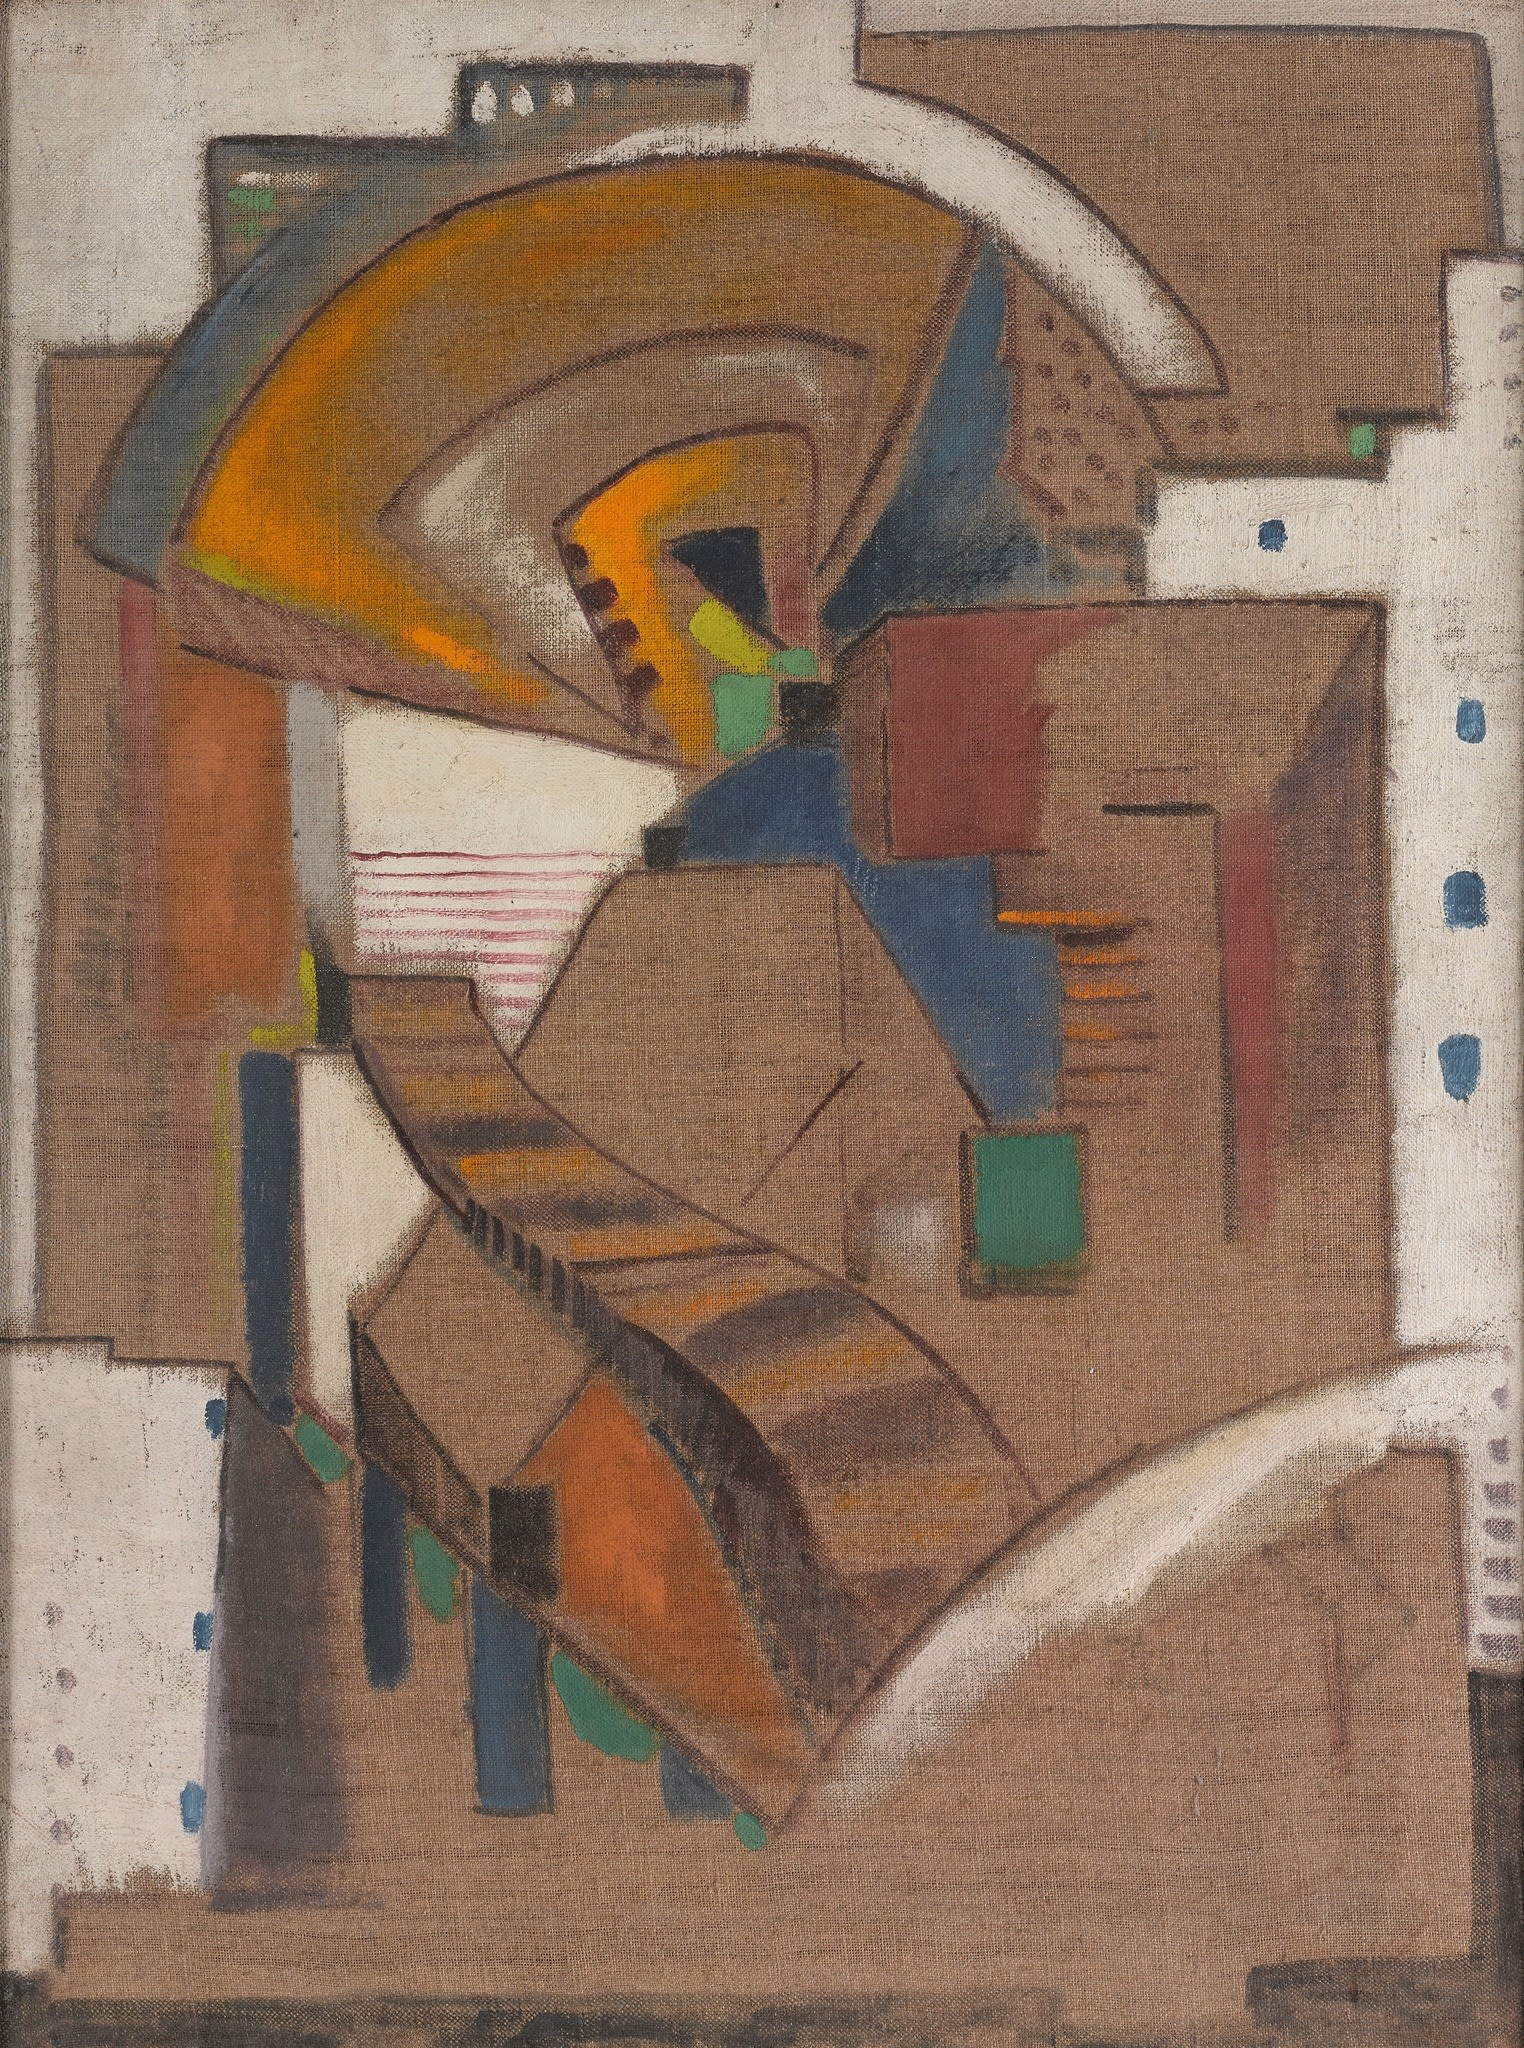 """<span class=""""link fancybox-details-link""""><a href=""""/artists/27-harry-phelan-gibb/works/209-harry-phelan-gibb-abstract-composition-c.-1912/"""">View Detail Page</a></span><div class=""""artist""""><strong>Harry Phelan Gibb</strong></div> 1870 - 1948 <div class=""""title""""><em>Abstract Composition</em>, c. 1912</div> <div class=""""medium"""">oil on canvas</div> <div class=""""dimensions"""">24 1/8 x 17 3/4 in<br />61 x 45 cm</div>"""